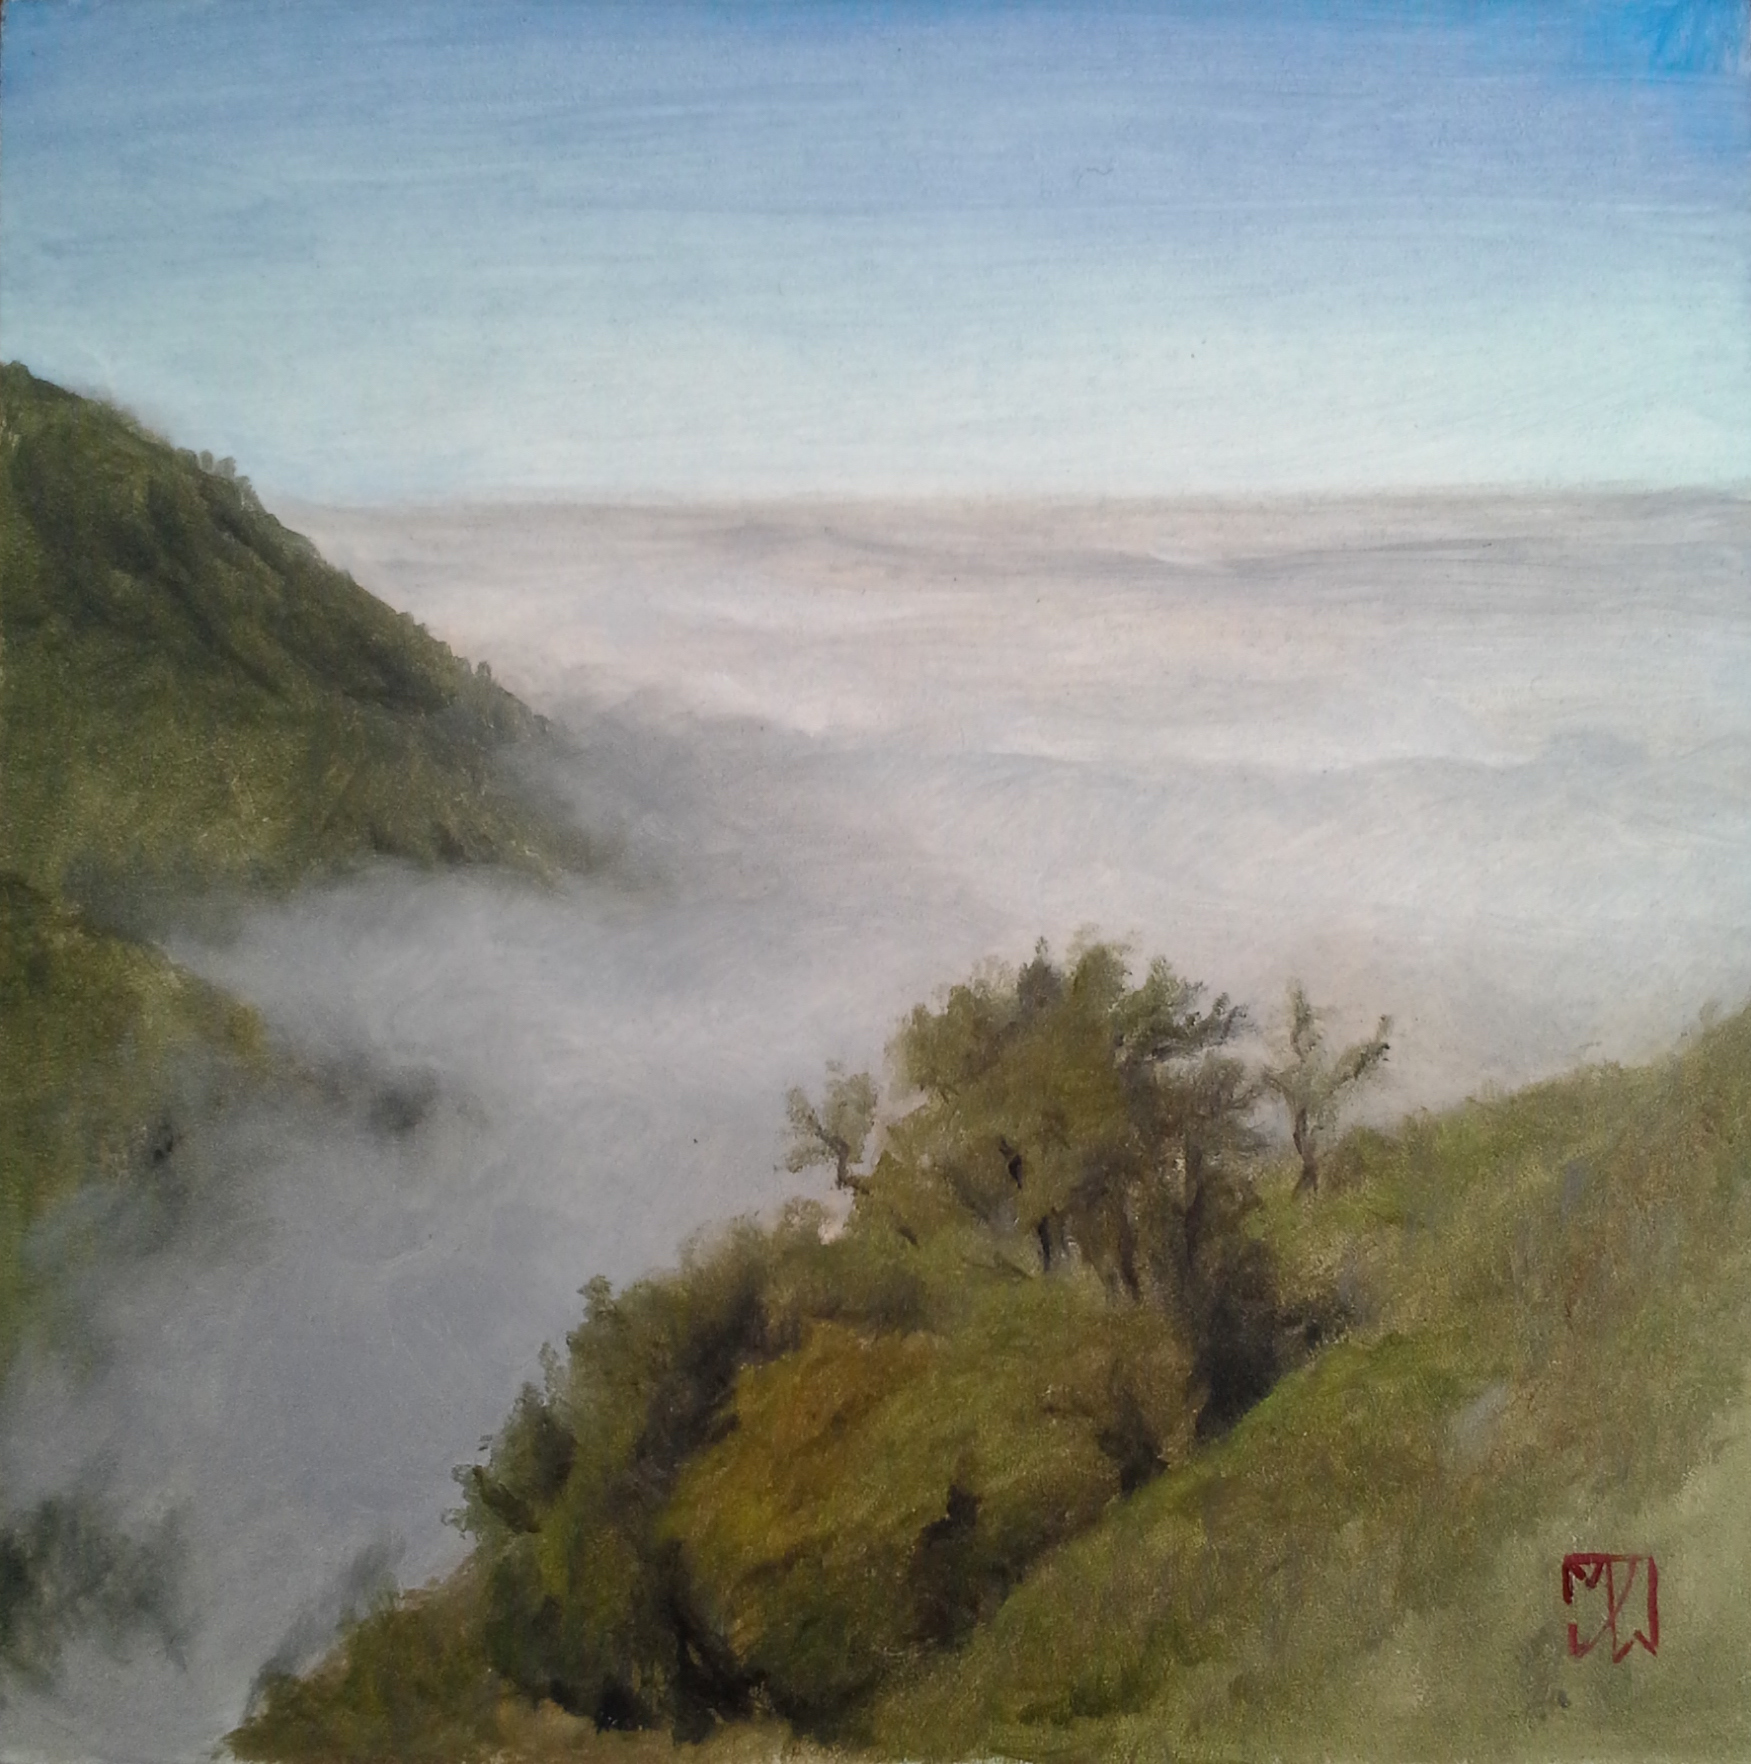 Above the Fog on Nacimiento Road